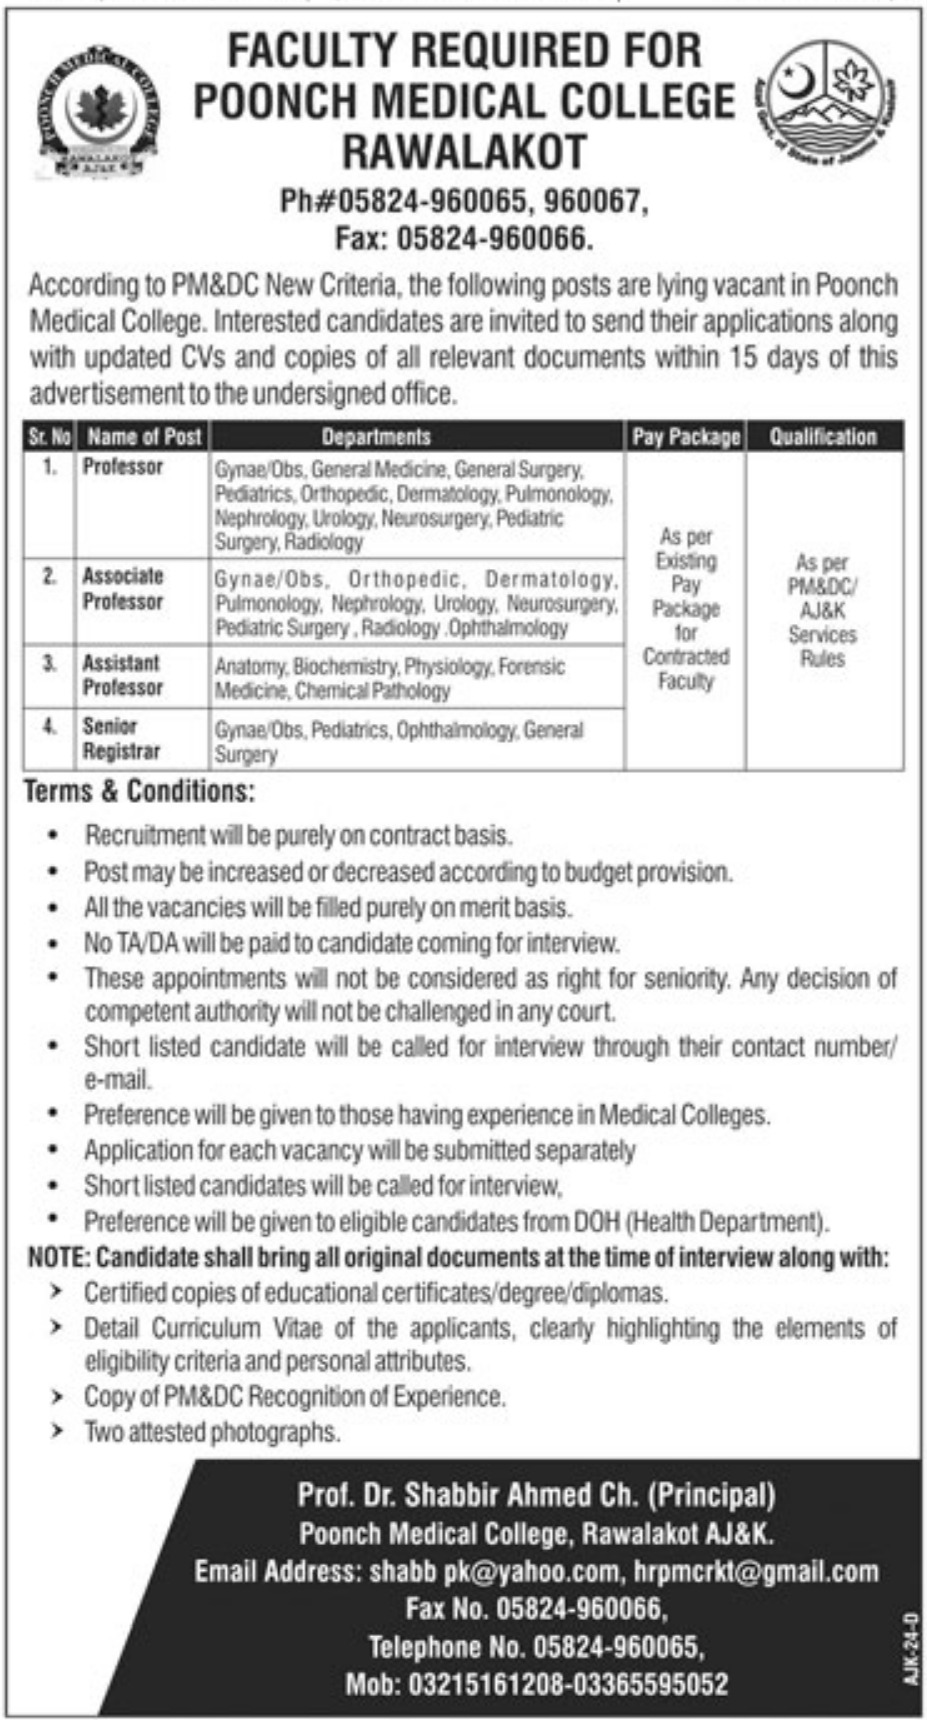 Poonch Medical College Rawalakot Jobs 2019 AJK